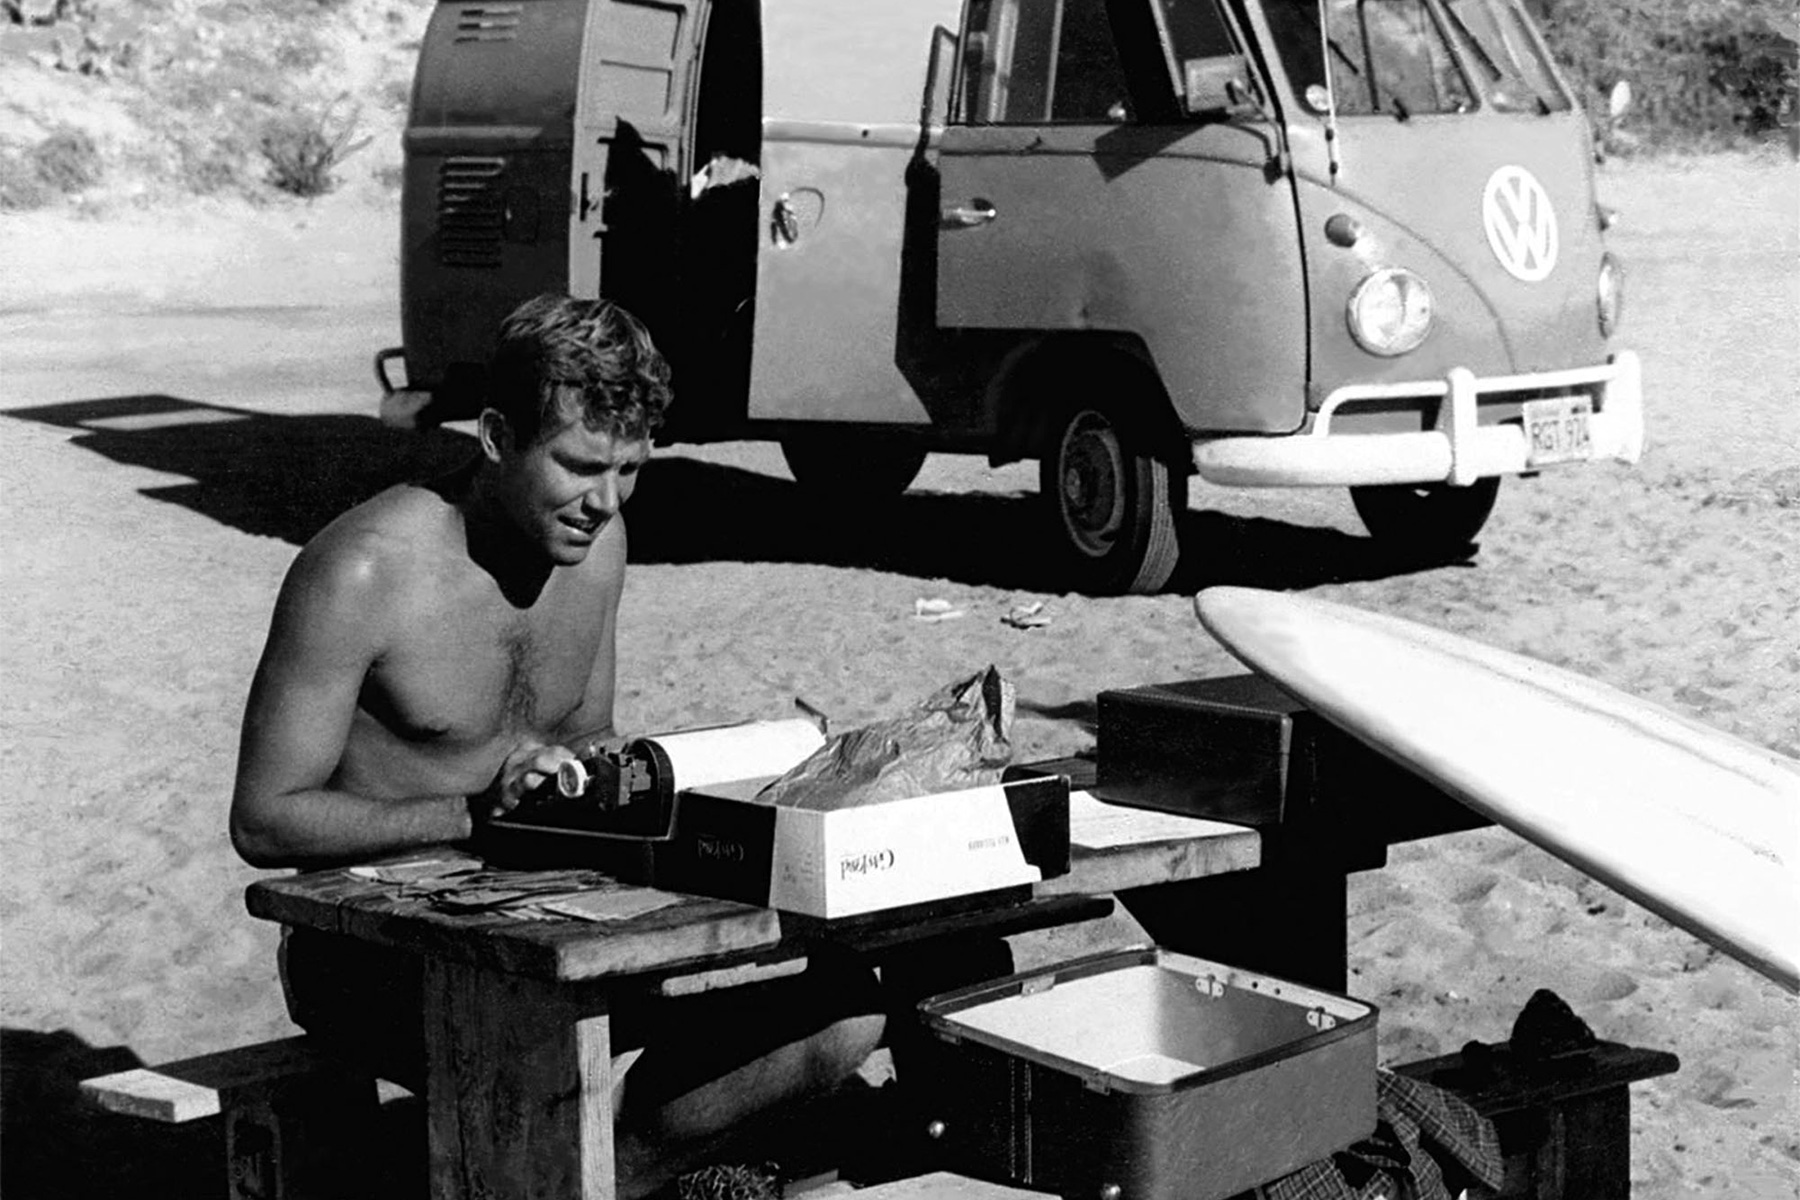 John Severson typing the first edition of Surfer Magazine at the beach next to his VW kombi van